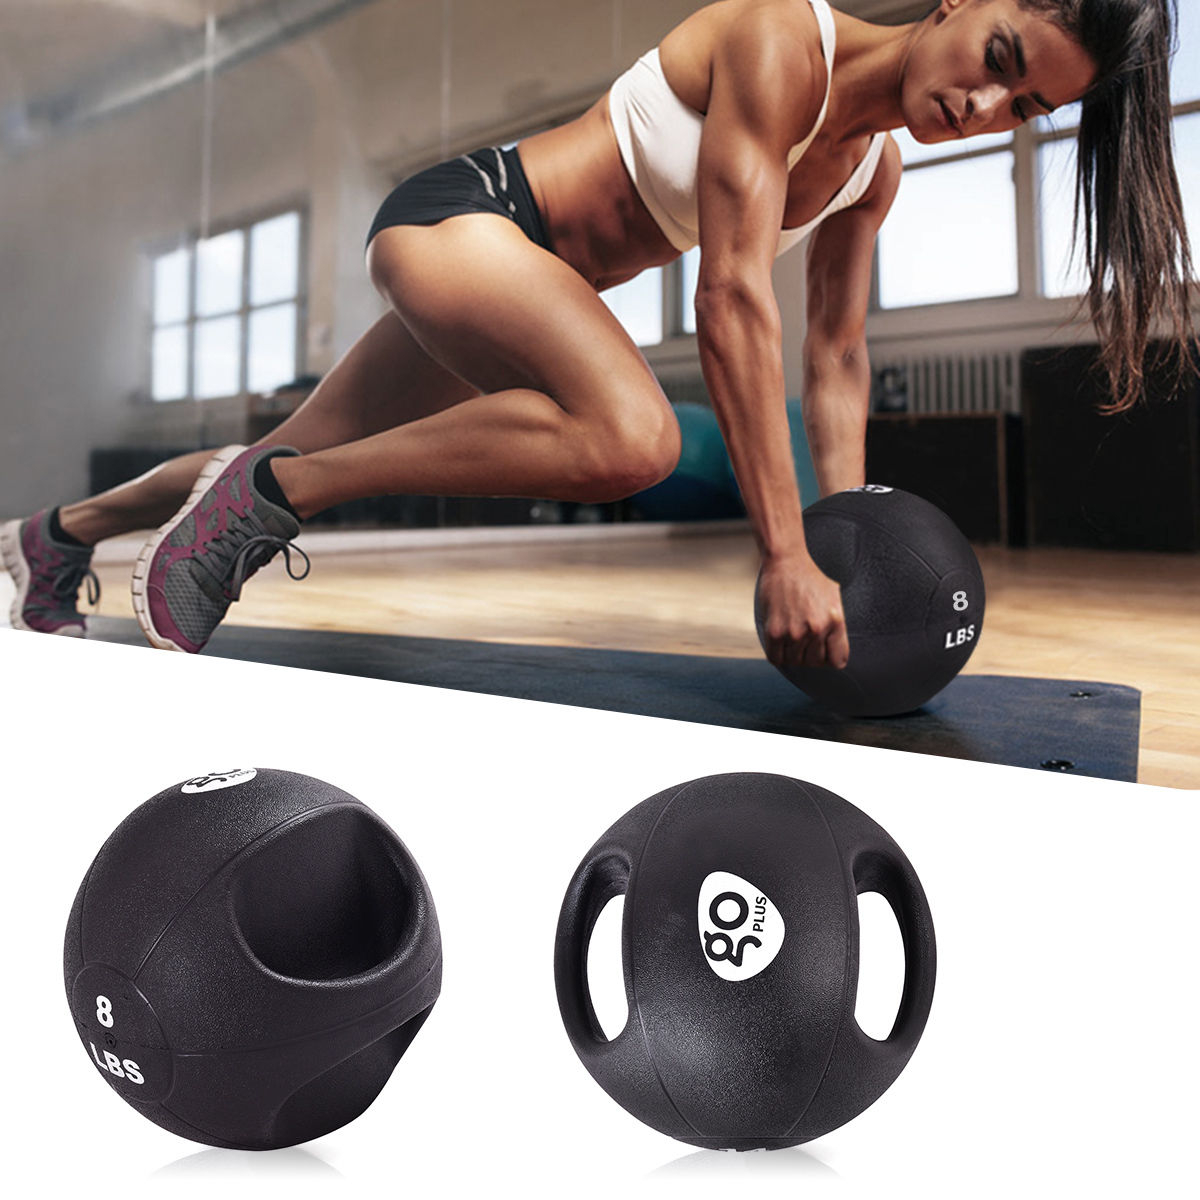 Dual Grip Medicine Ball Fitness Weighted Training 6 8 10 12 14 16 20lbs by Costway